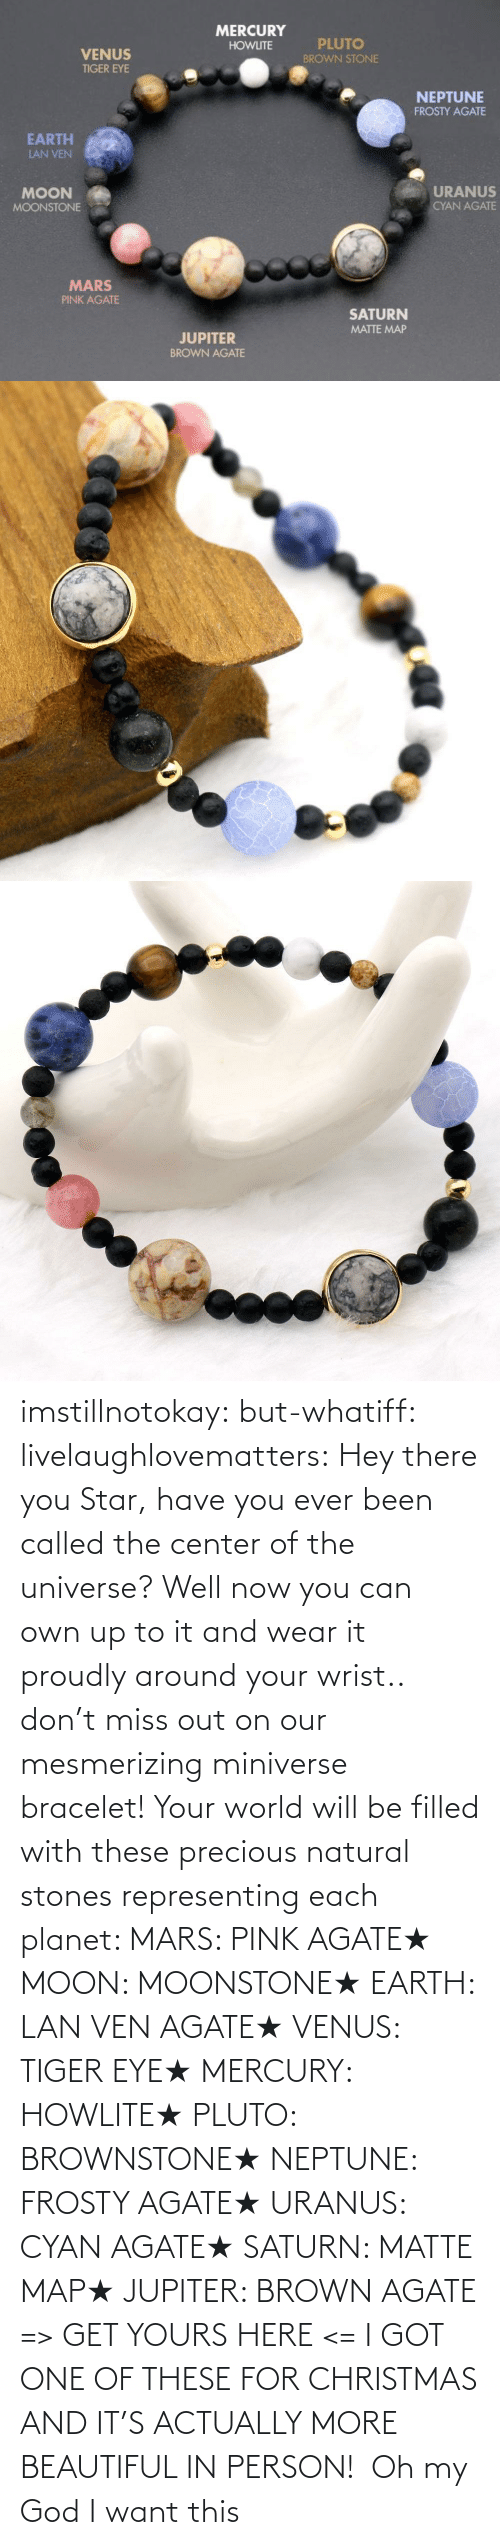 planet: imstillnotokay:  but-whatiff: livelaughlovematters:  Hey there you Star, have you ever been called the center of the universe? Well now you can own up to it and wear it proudly around your wrist.. don't miss out on our mesmerizing miniverse bracelet! Your world will be filled with these precious natural stones representing each planet:  MARS: PINK AGATE★ MOON: MOONSTONE★ EARTH: LAN VEN AGATE★ VENUS: TIGER EYE★ MERCURY: HOWLITE★ PLUTO: BROWNSTONE★ NEPTUNE: FROSTY AGATE★ URANUS: CYAN AGATE★ SATURN: MATTE MAP★ JUPITER: BROWN AGATE => GET YOURS HERE <=  I GOT ONE OF THESE FOR CHRISTMAS AND IT'S ACTUALLY MORE BEAUTIFUL IN PERSON!     Oh my God I want this